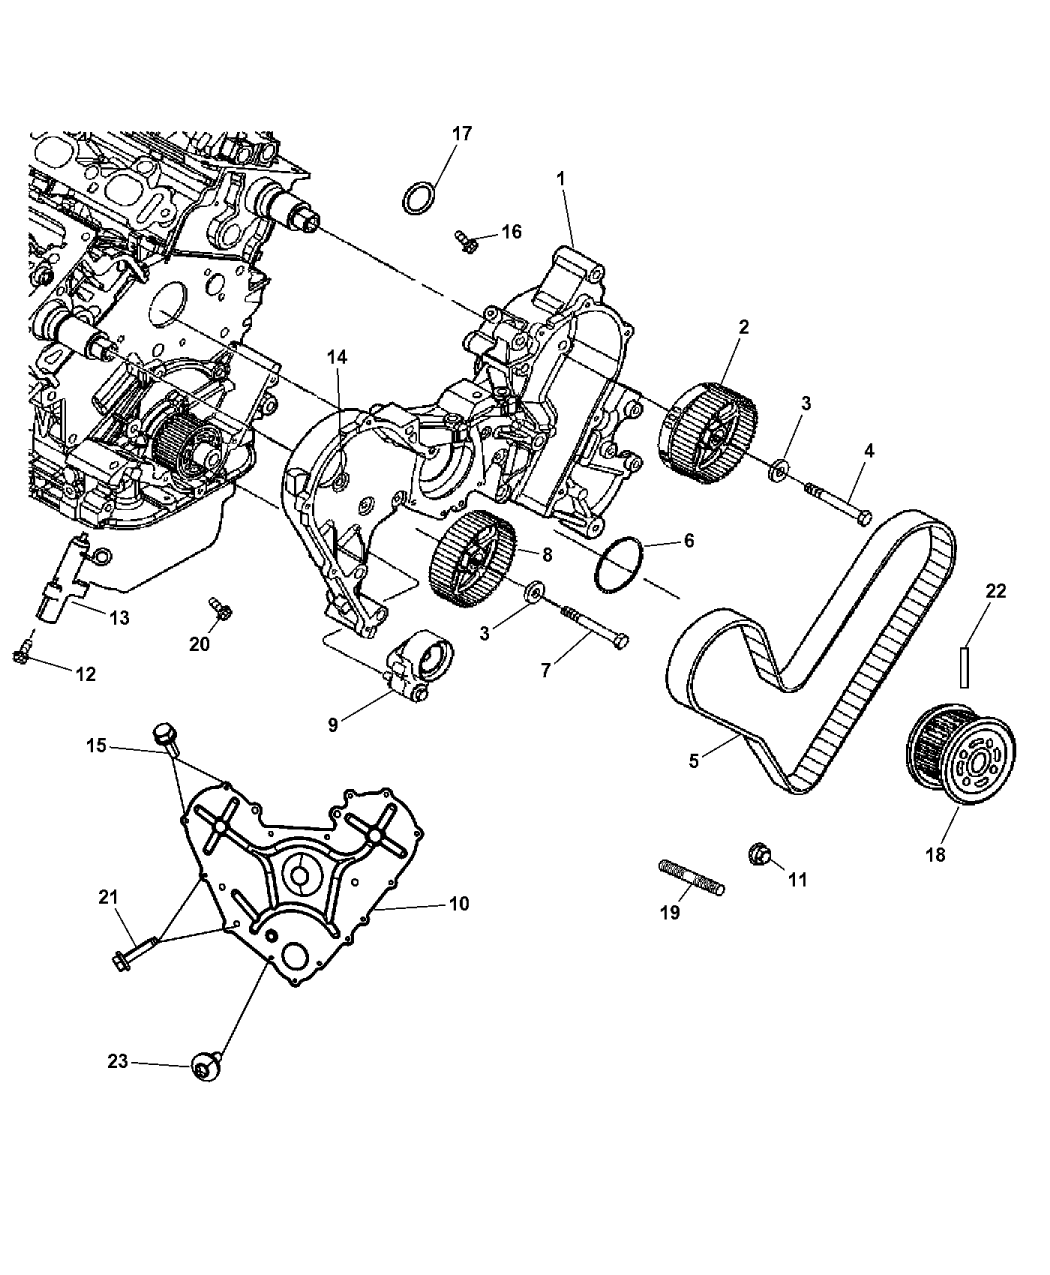 The Purpose Of The Timing Chain Guides Is